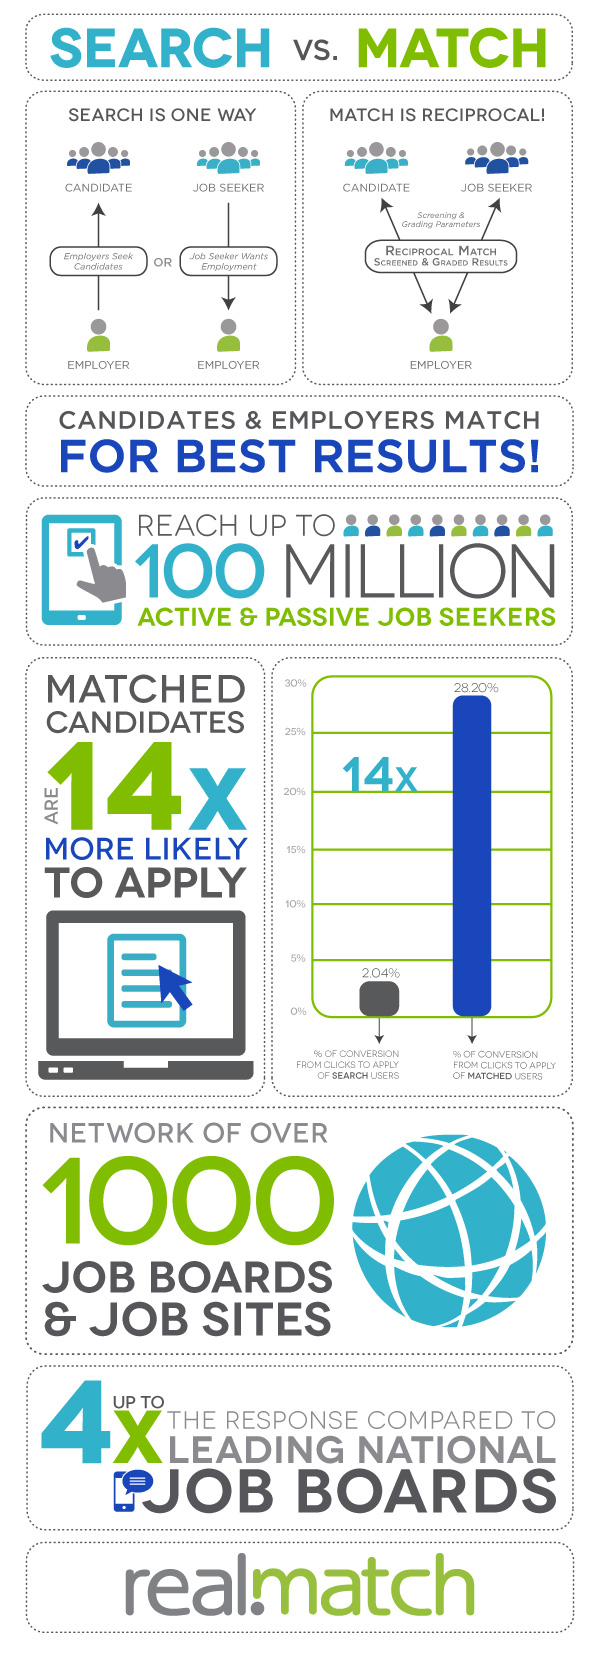 Search vs. Match Infographic